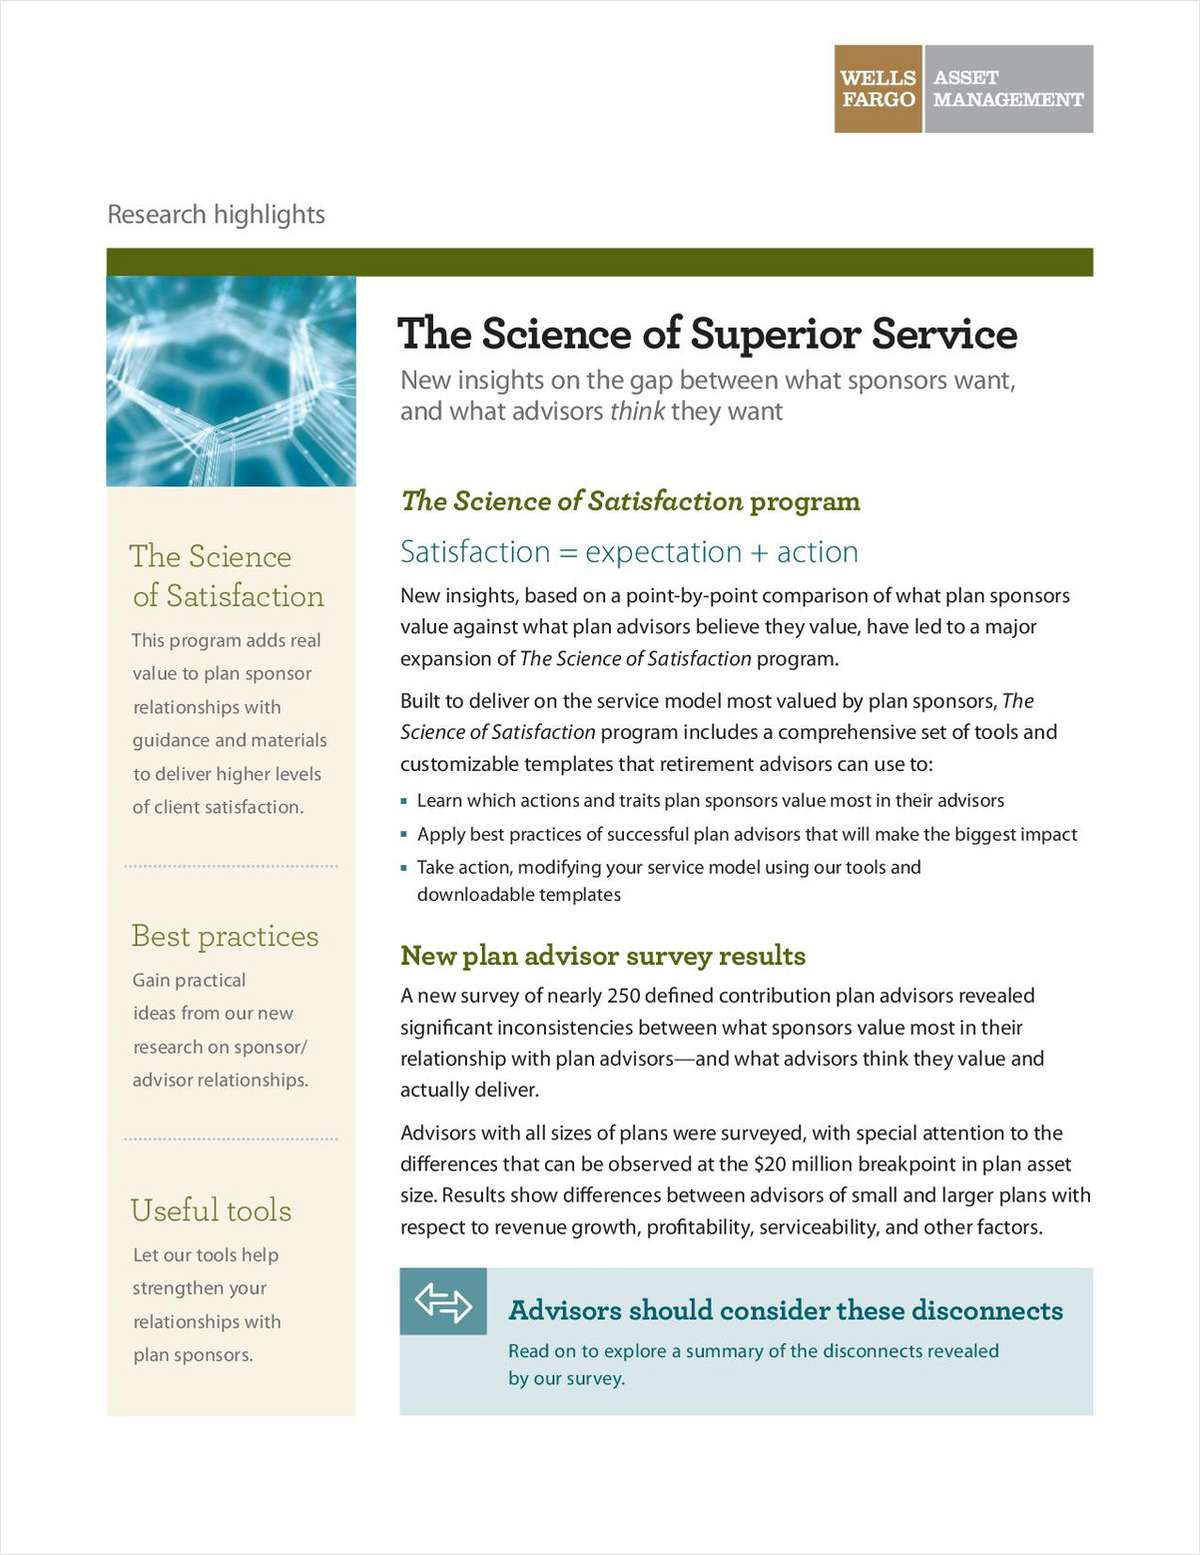 The Science of Superior Service